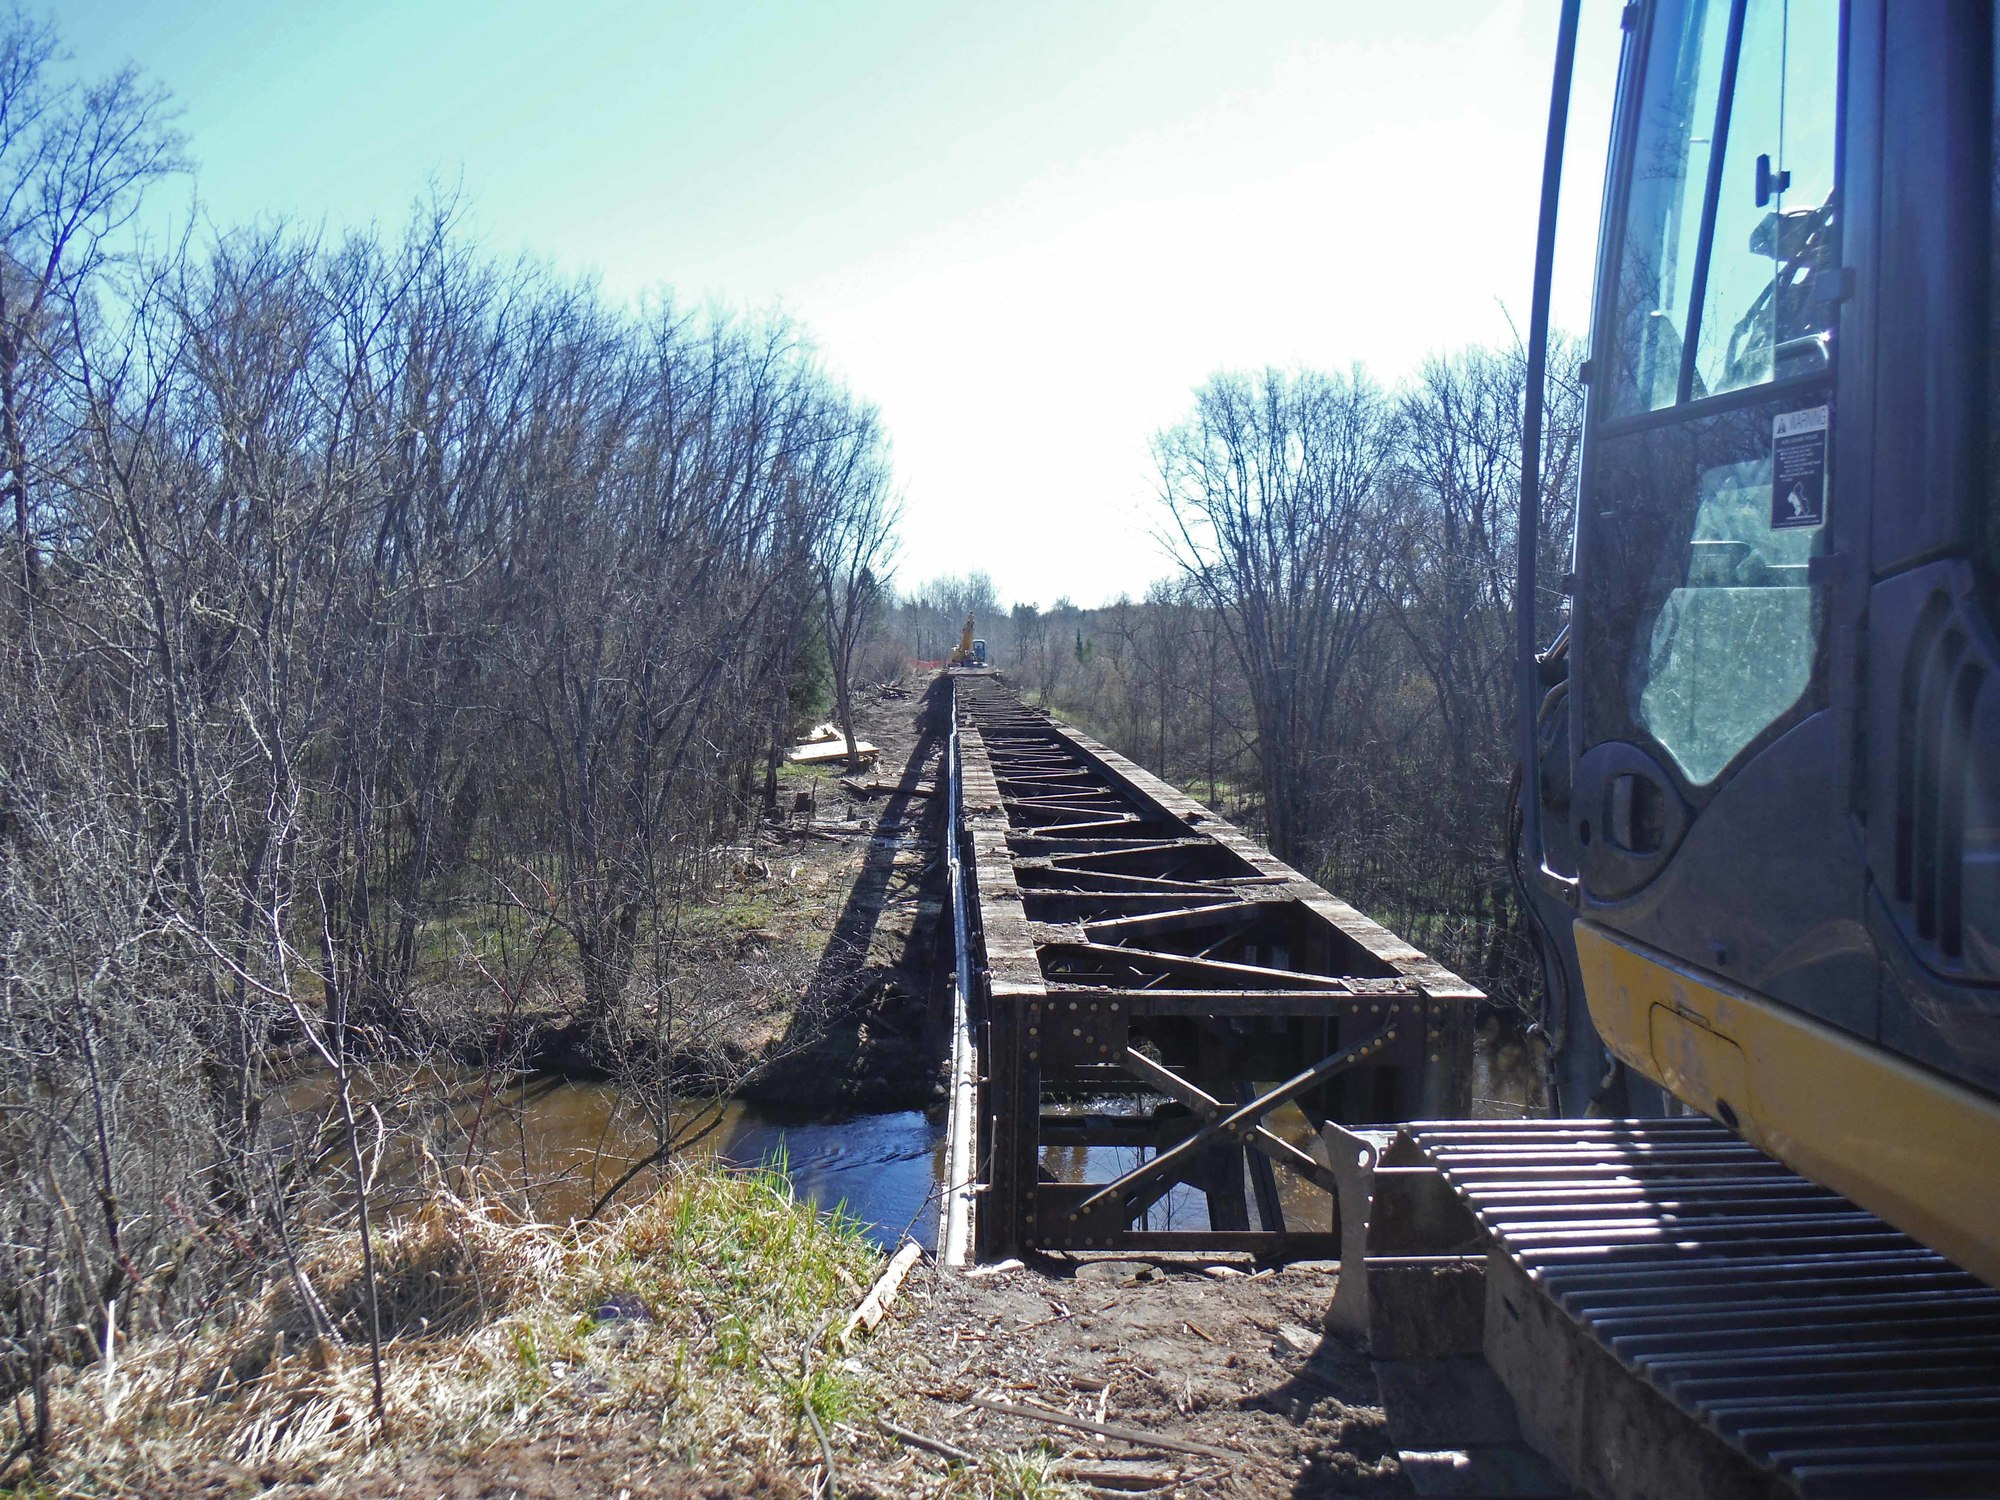 The decking and abutments of a trail bridge over the South Branch of the Ontonagon River are being removed.